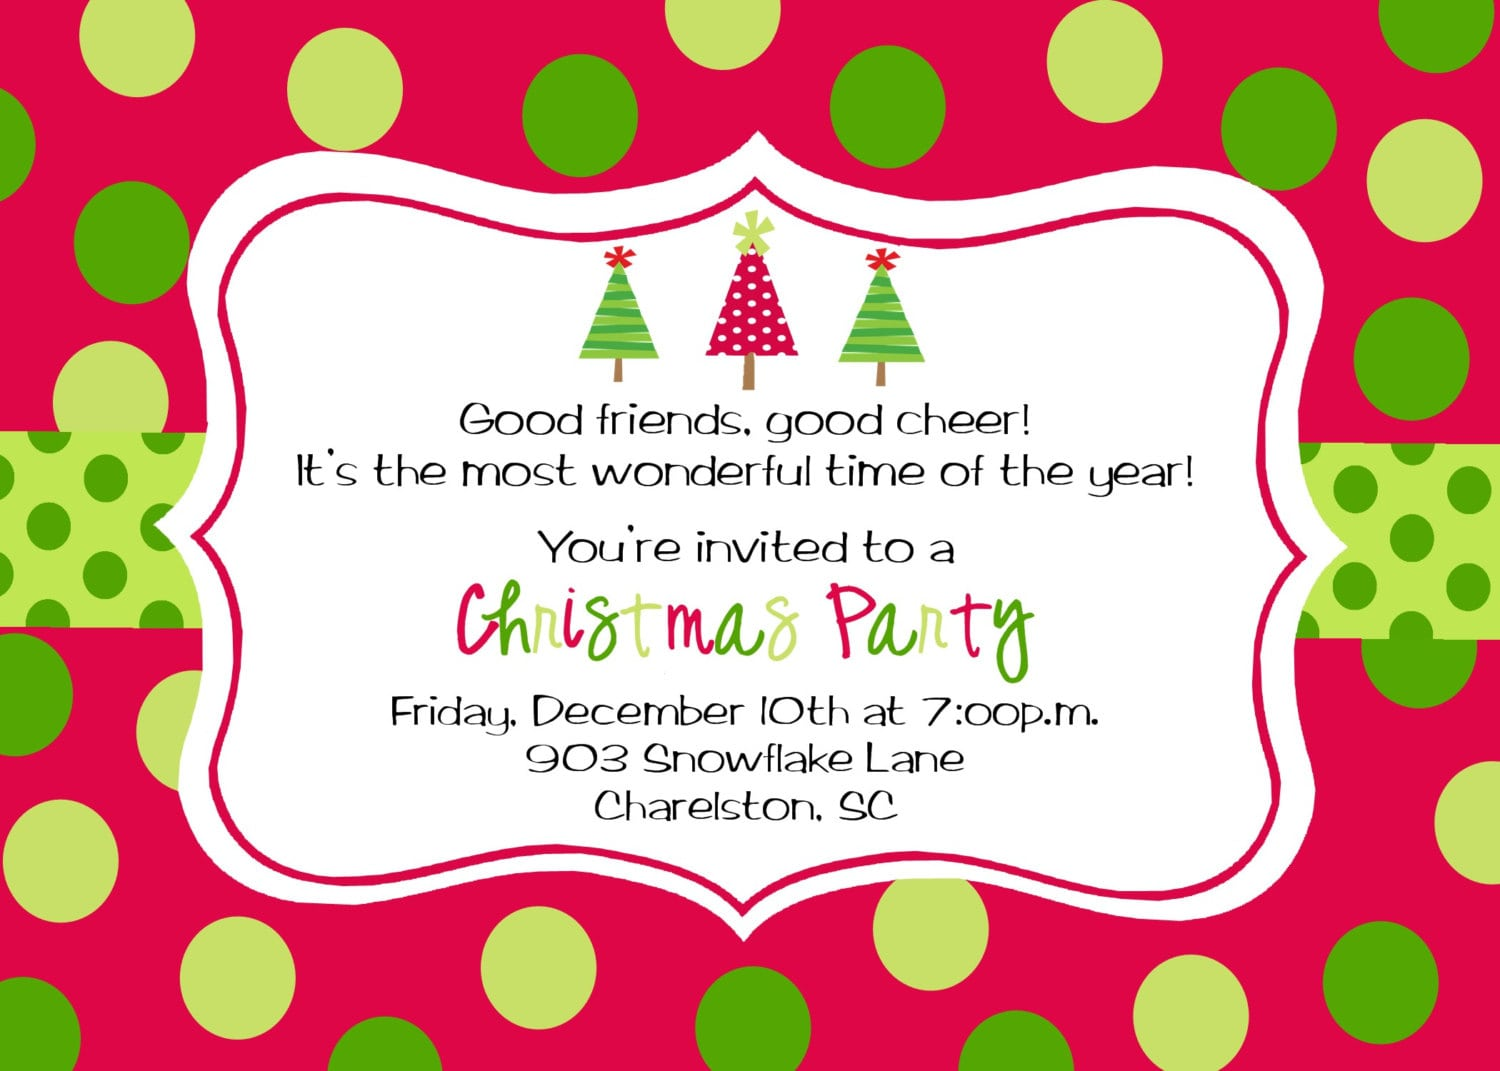 Invitation Wording Samples For Christmas Party